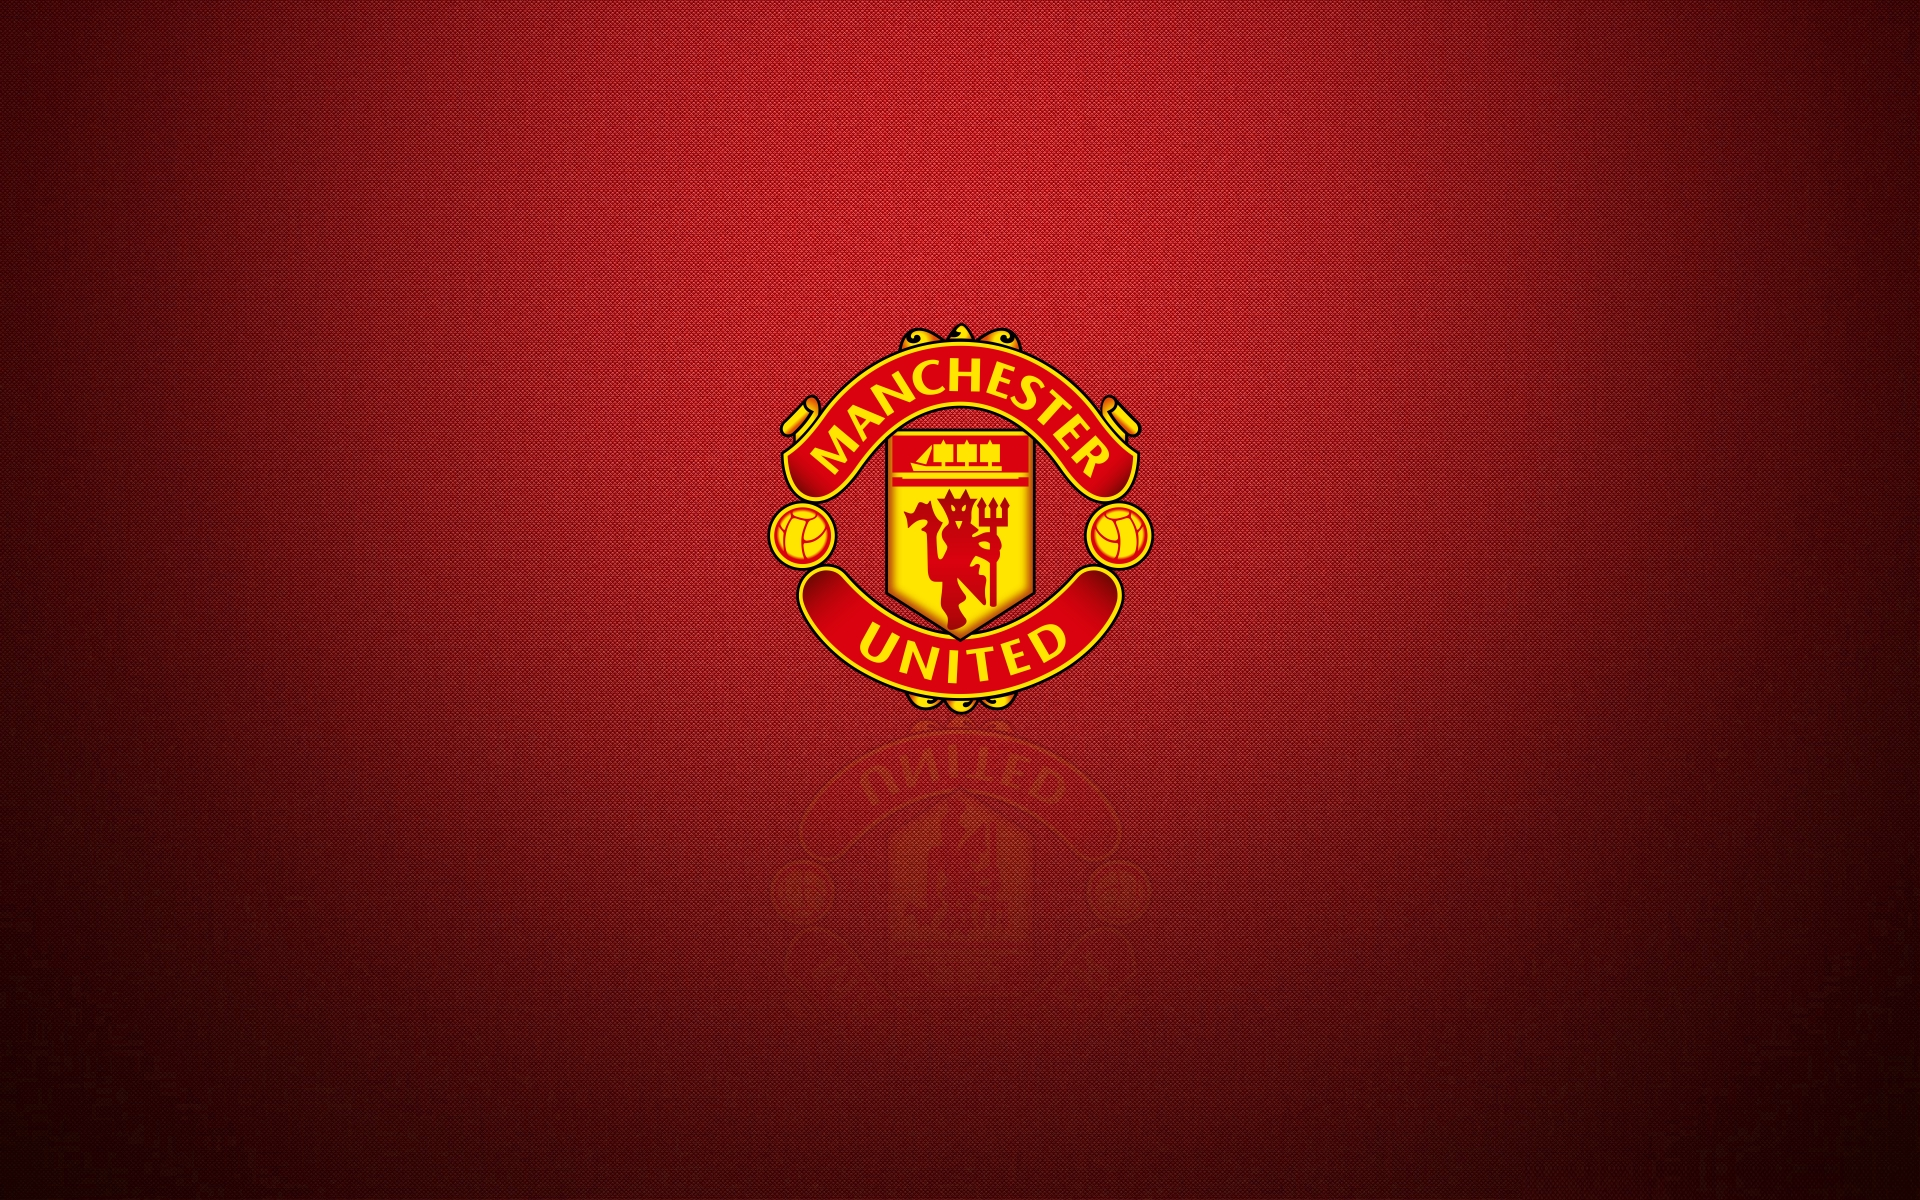 Manchester United Logos Download